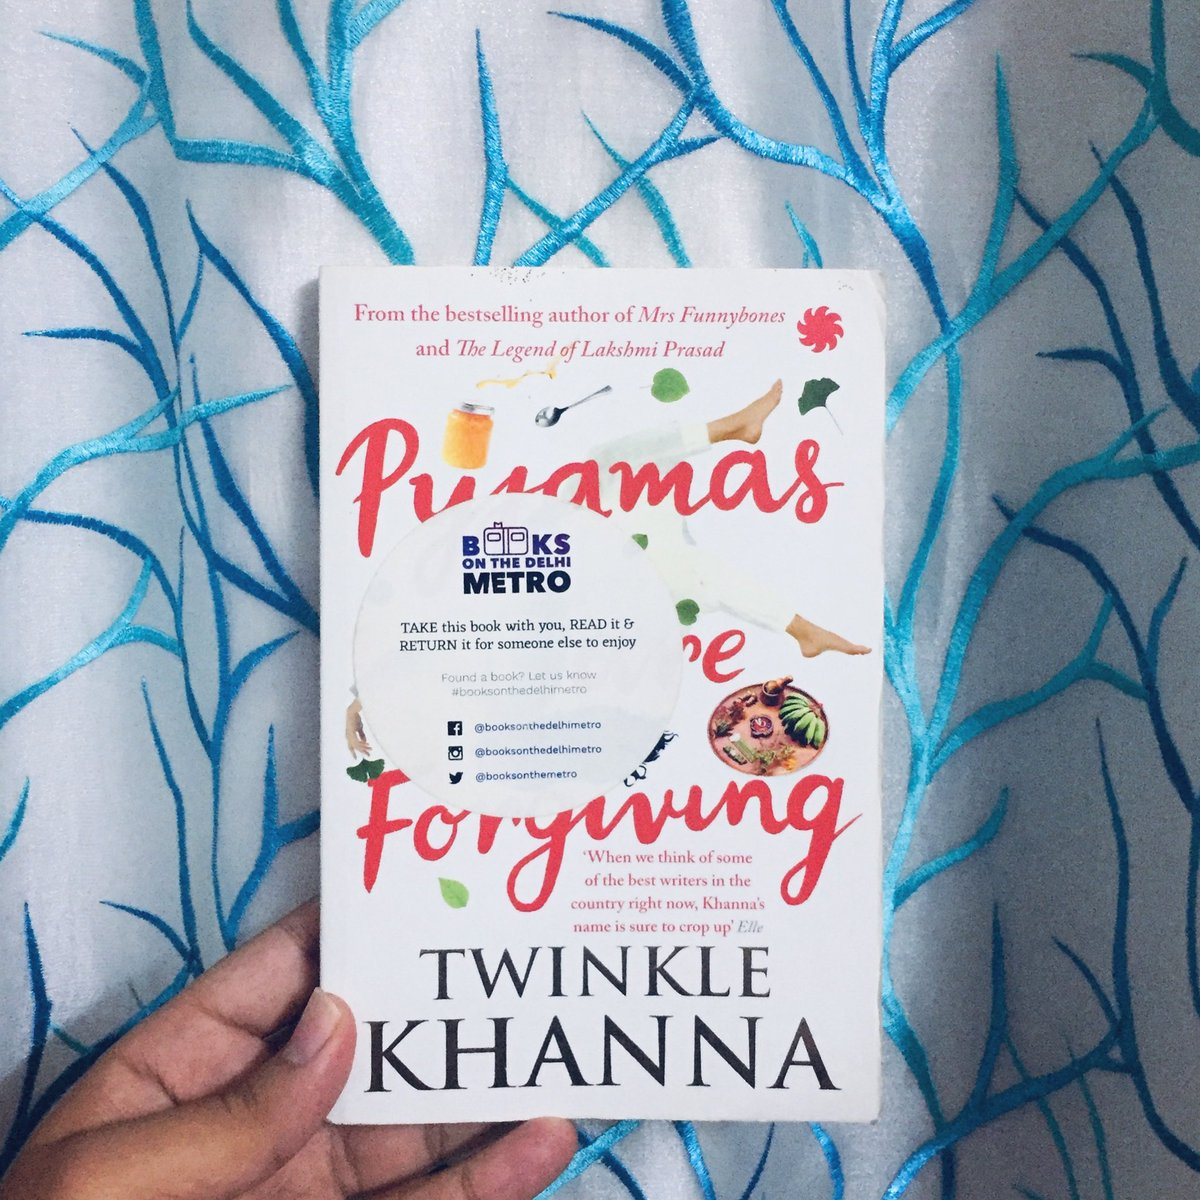 #readwithBODM An Indian fiction novel written by @mrsfunnybones , Pyjamas are Forgiving is a short and sweet read narrated by a woman named Anshu.